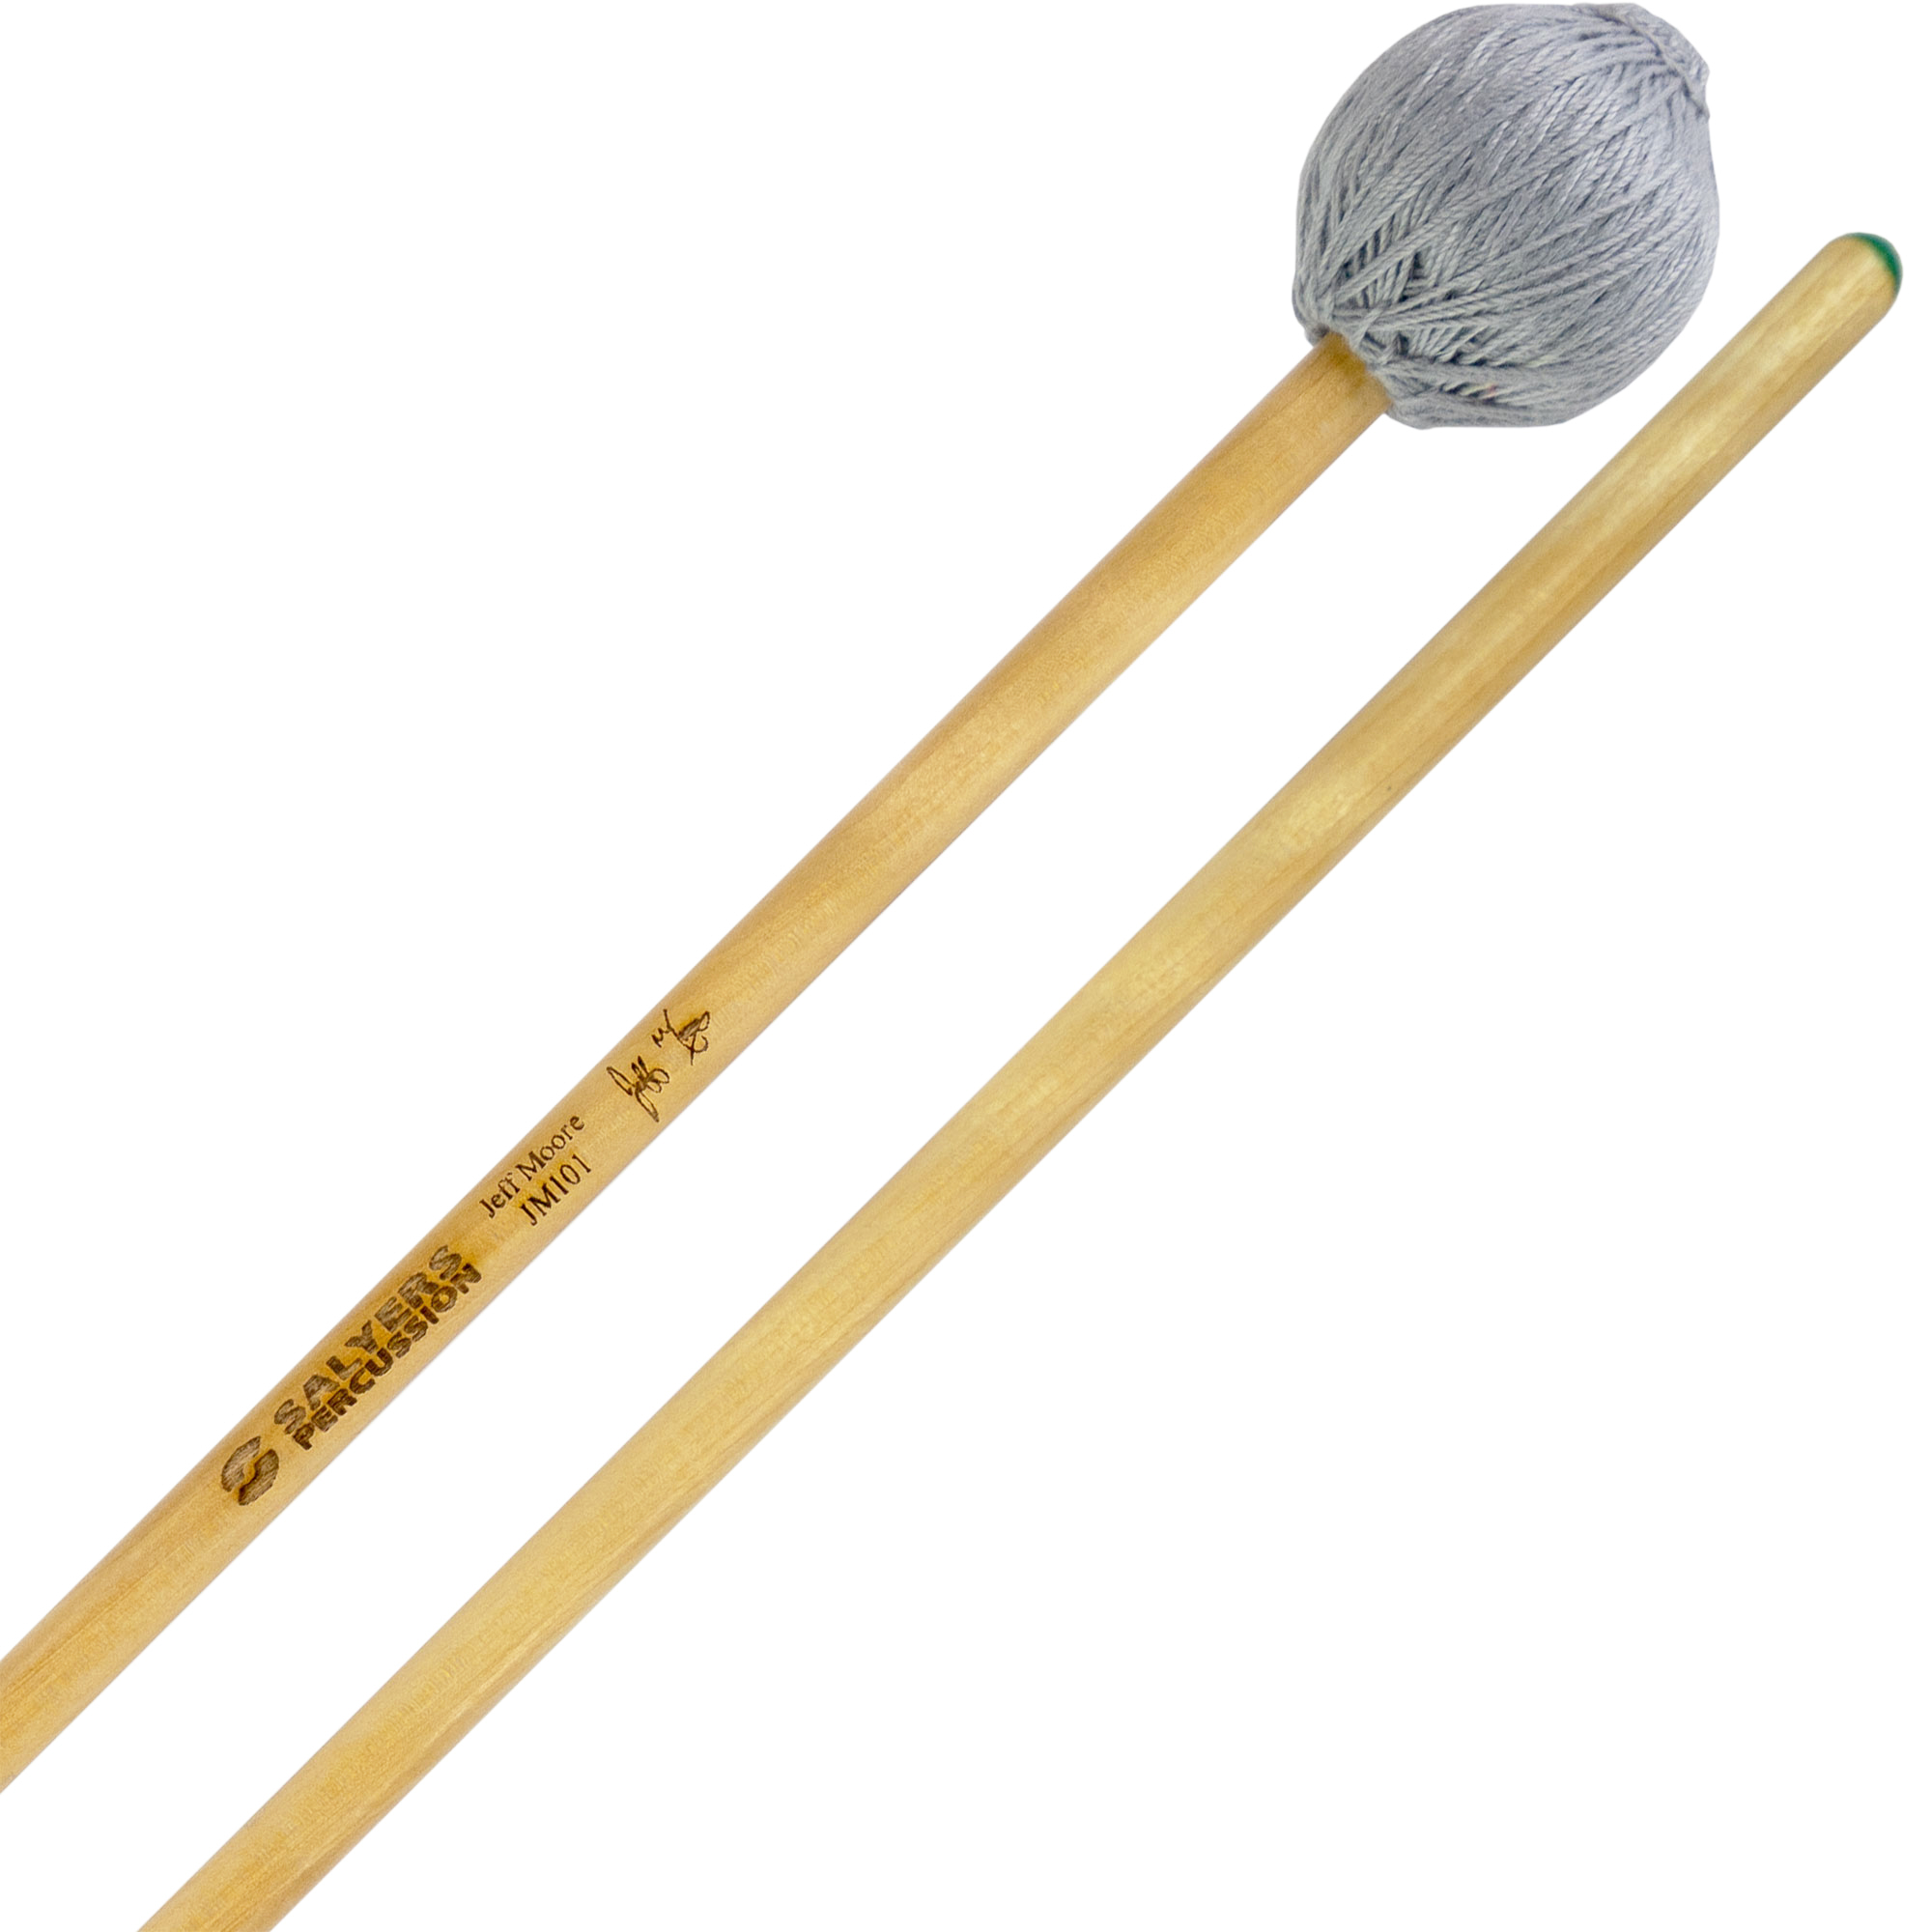 Salyers Percussion Jeff Moore Signature Soft Marimba Mallets with Birch Handles